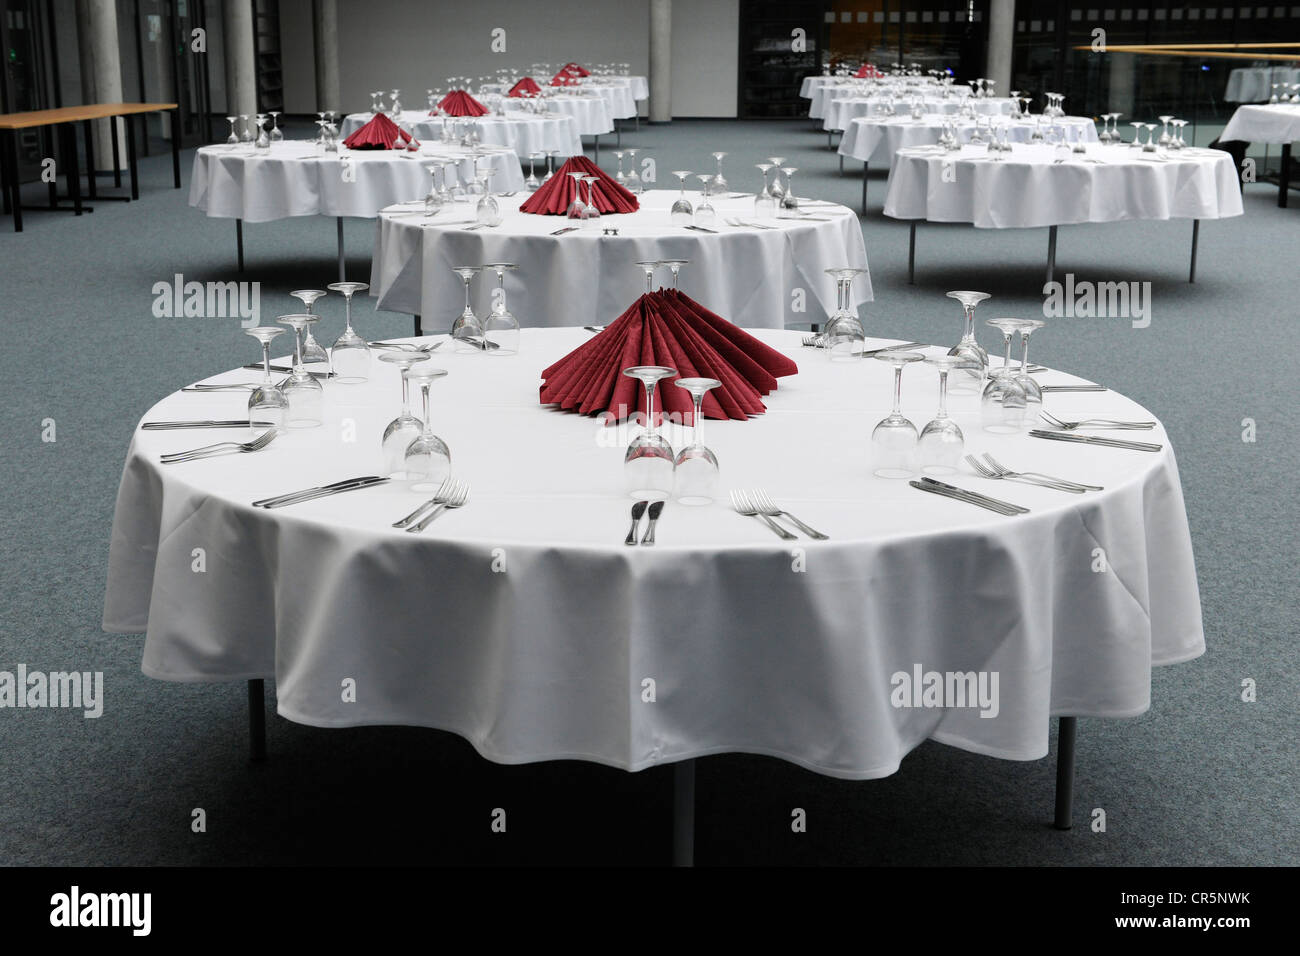 Corporate event, preparations, dining tables are laid with crockery, cutlerly and glasses, Thuringia, Germany, Europe - Stock Image